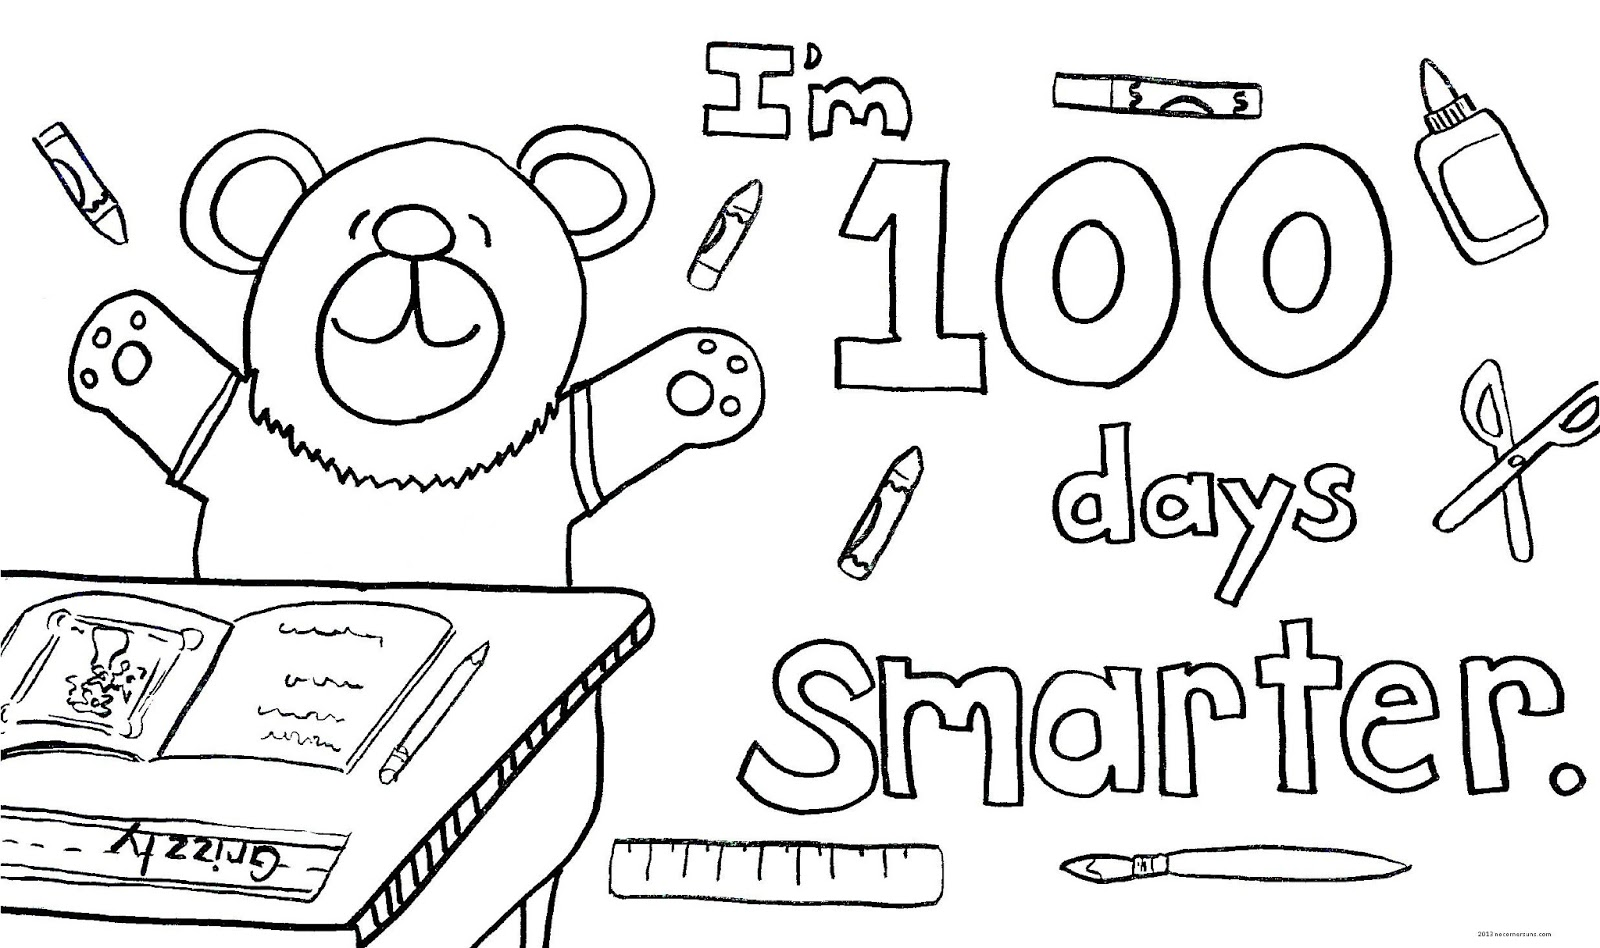 100 days of school coloring page - no corner suns it 39 s the 100th day